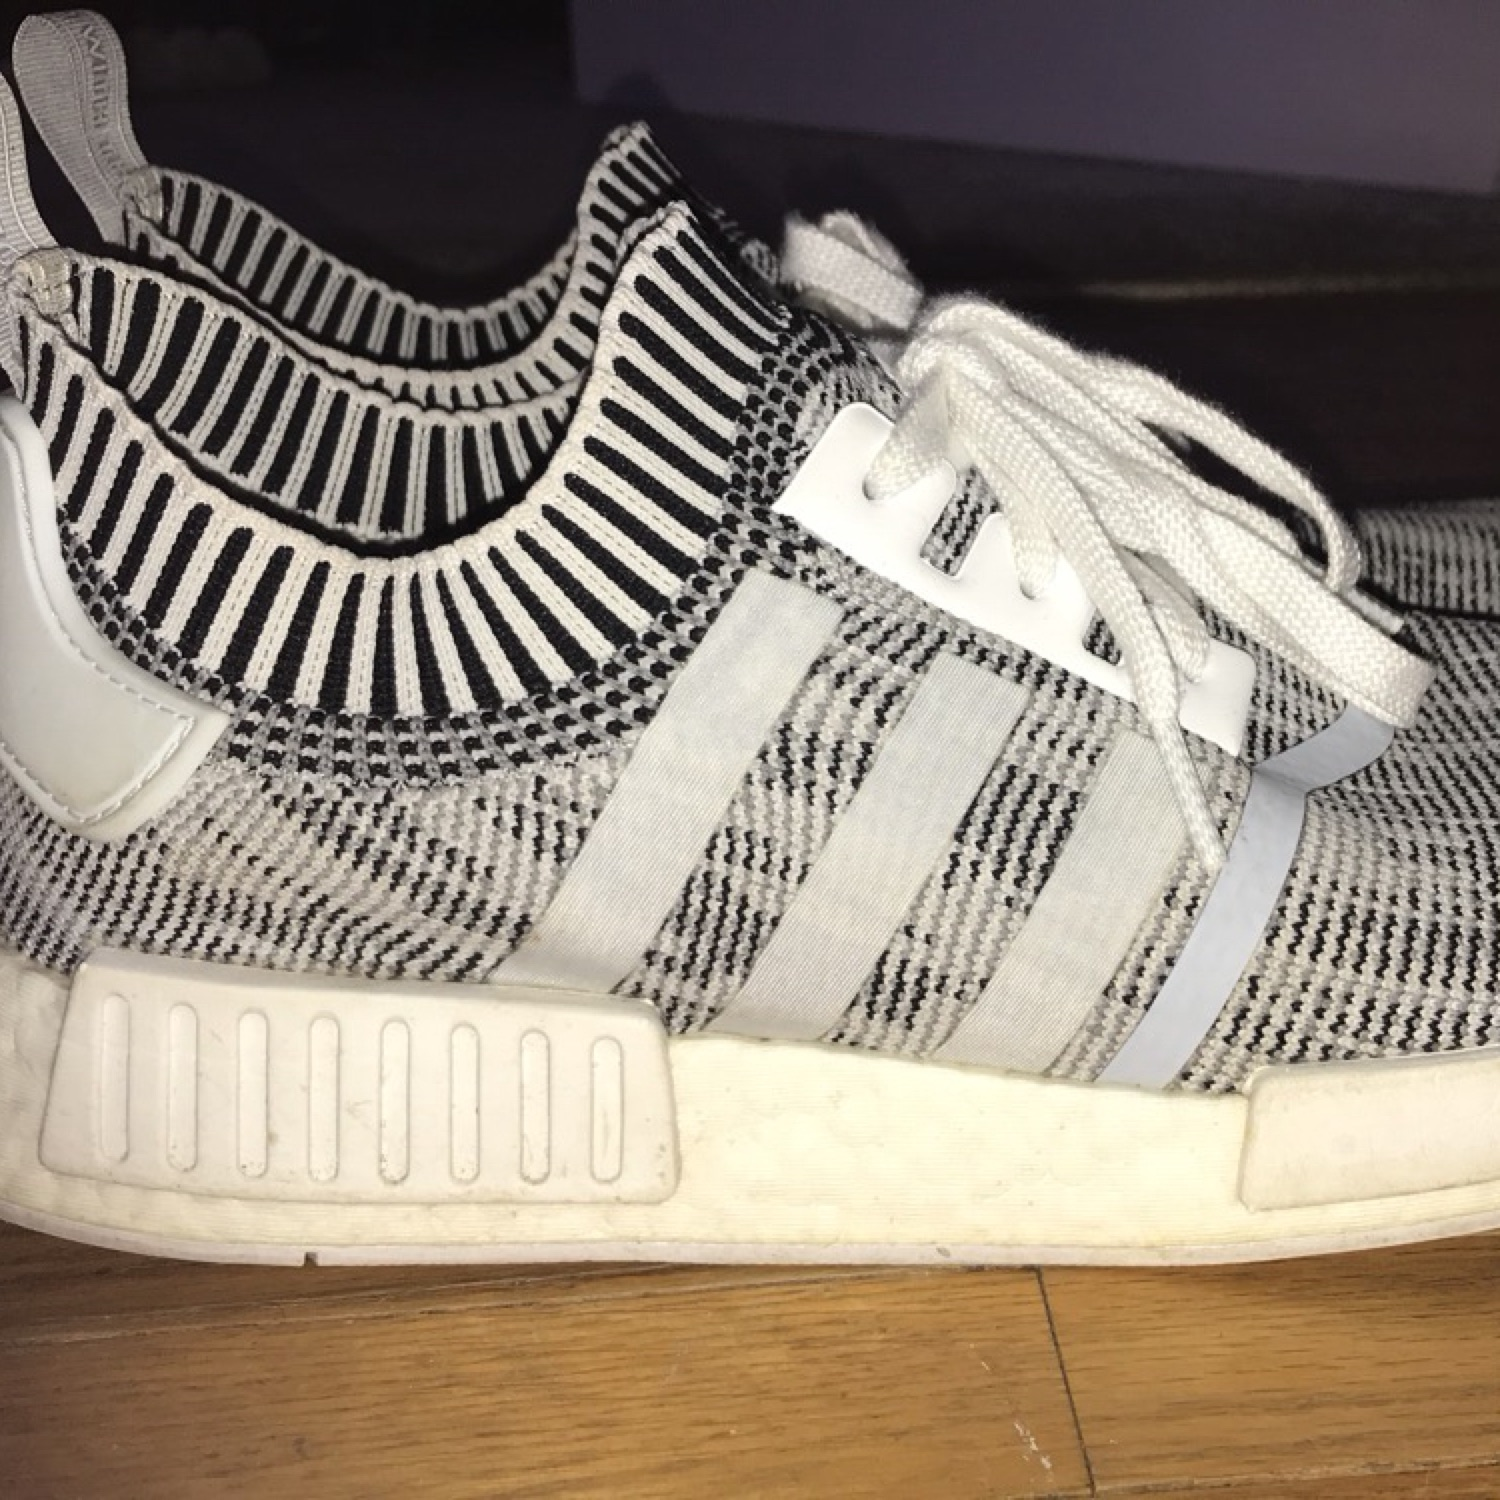 huge selection of ce5d9 09ad3 Adidas Nmd R1 Pk 'Oreo'